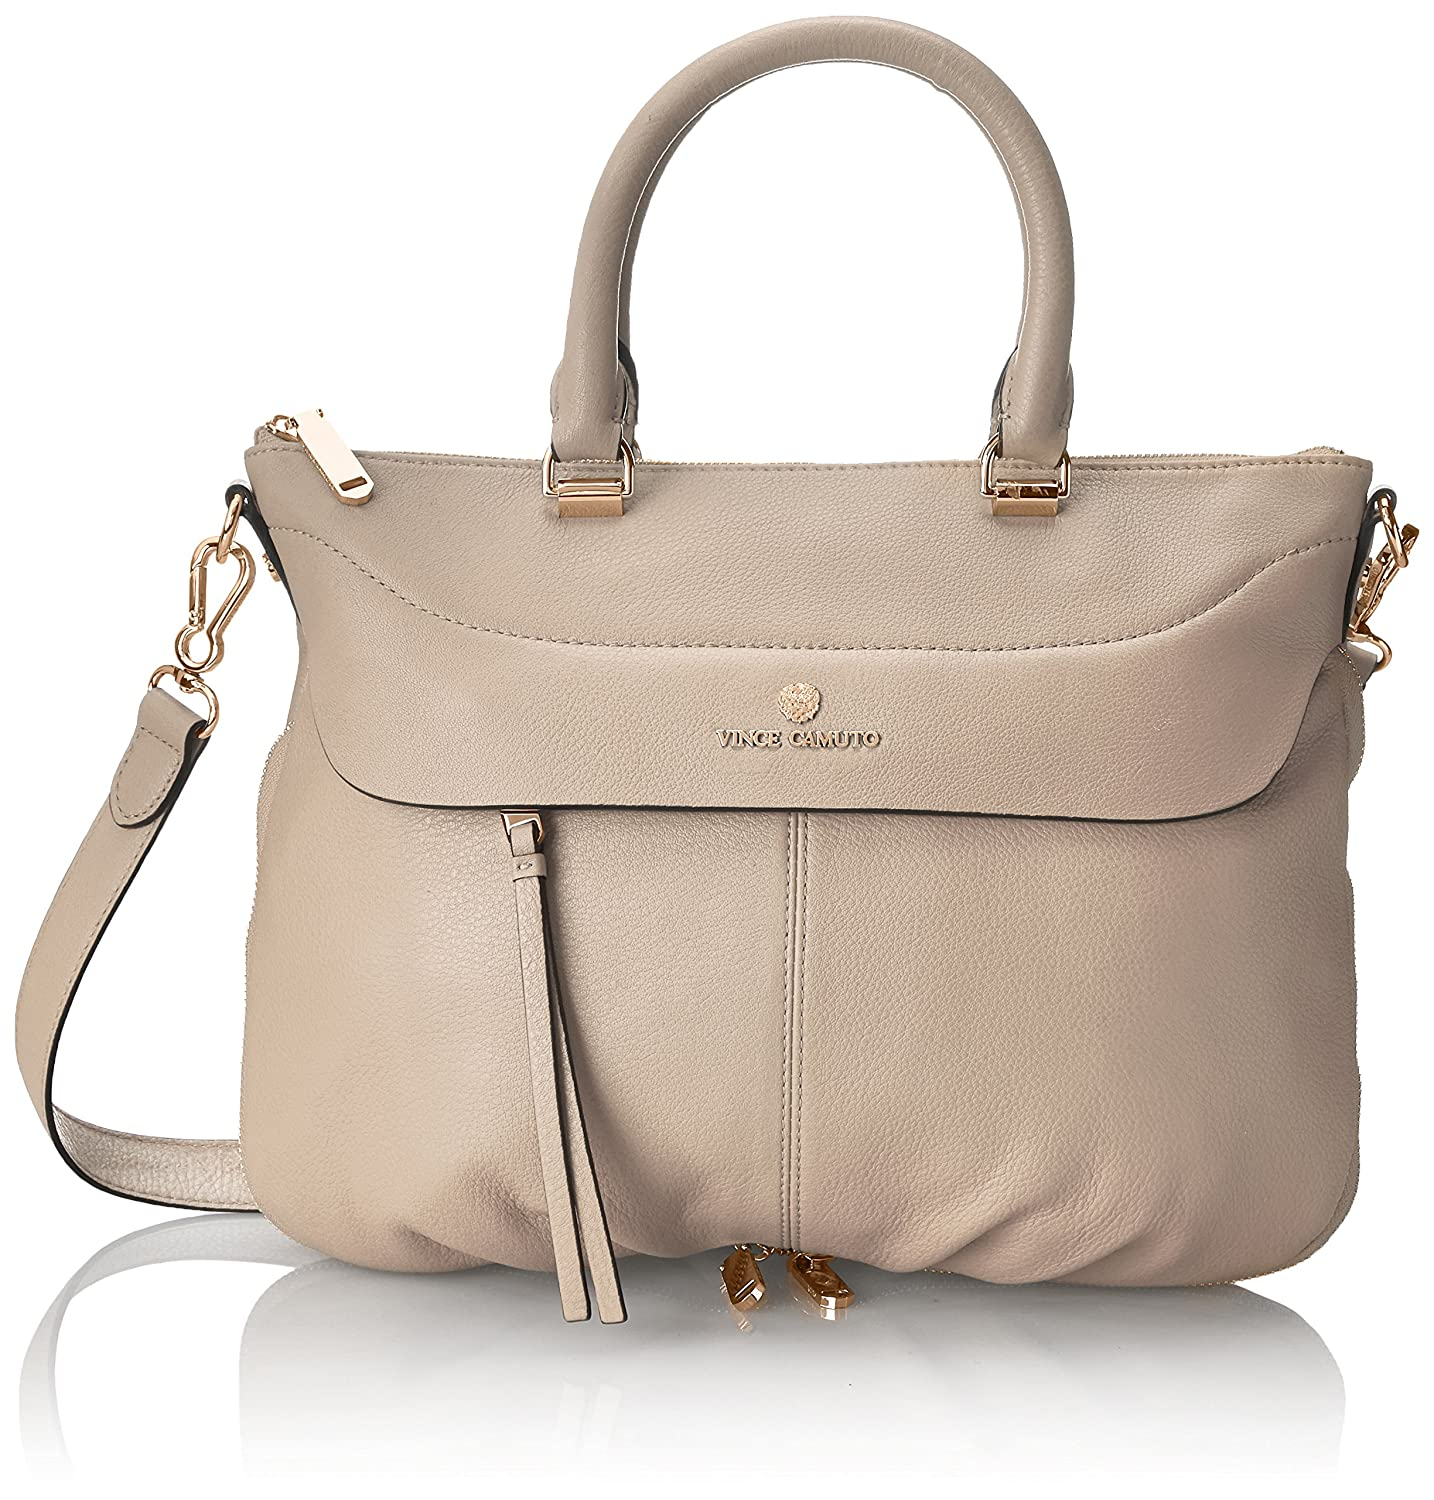 88356ef94c3c Amazon.com: Vince Camuto Dean Satchel: Clothing